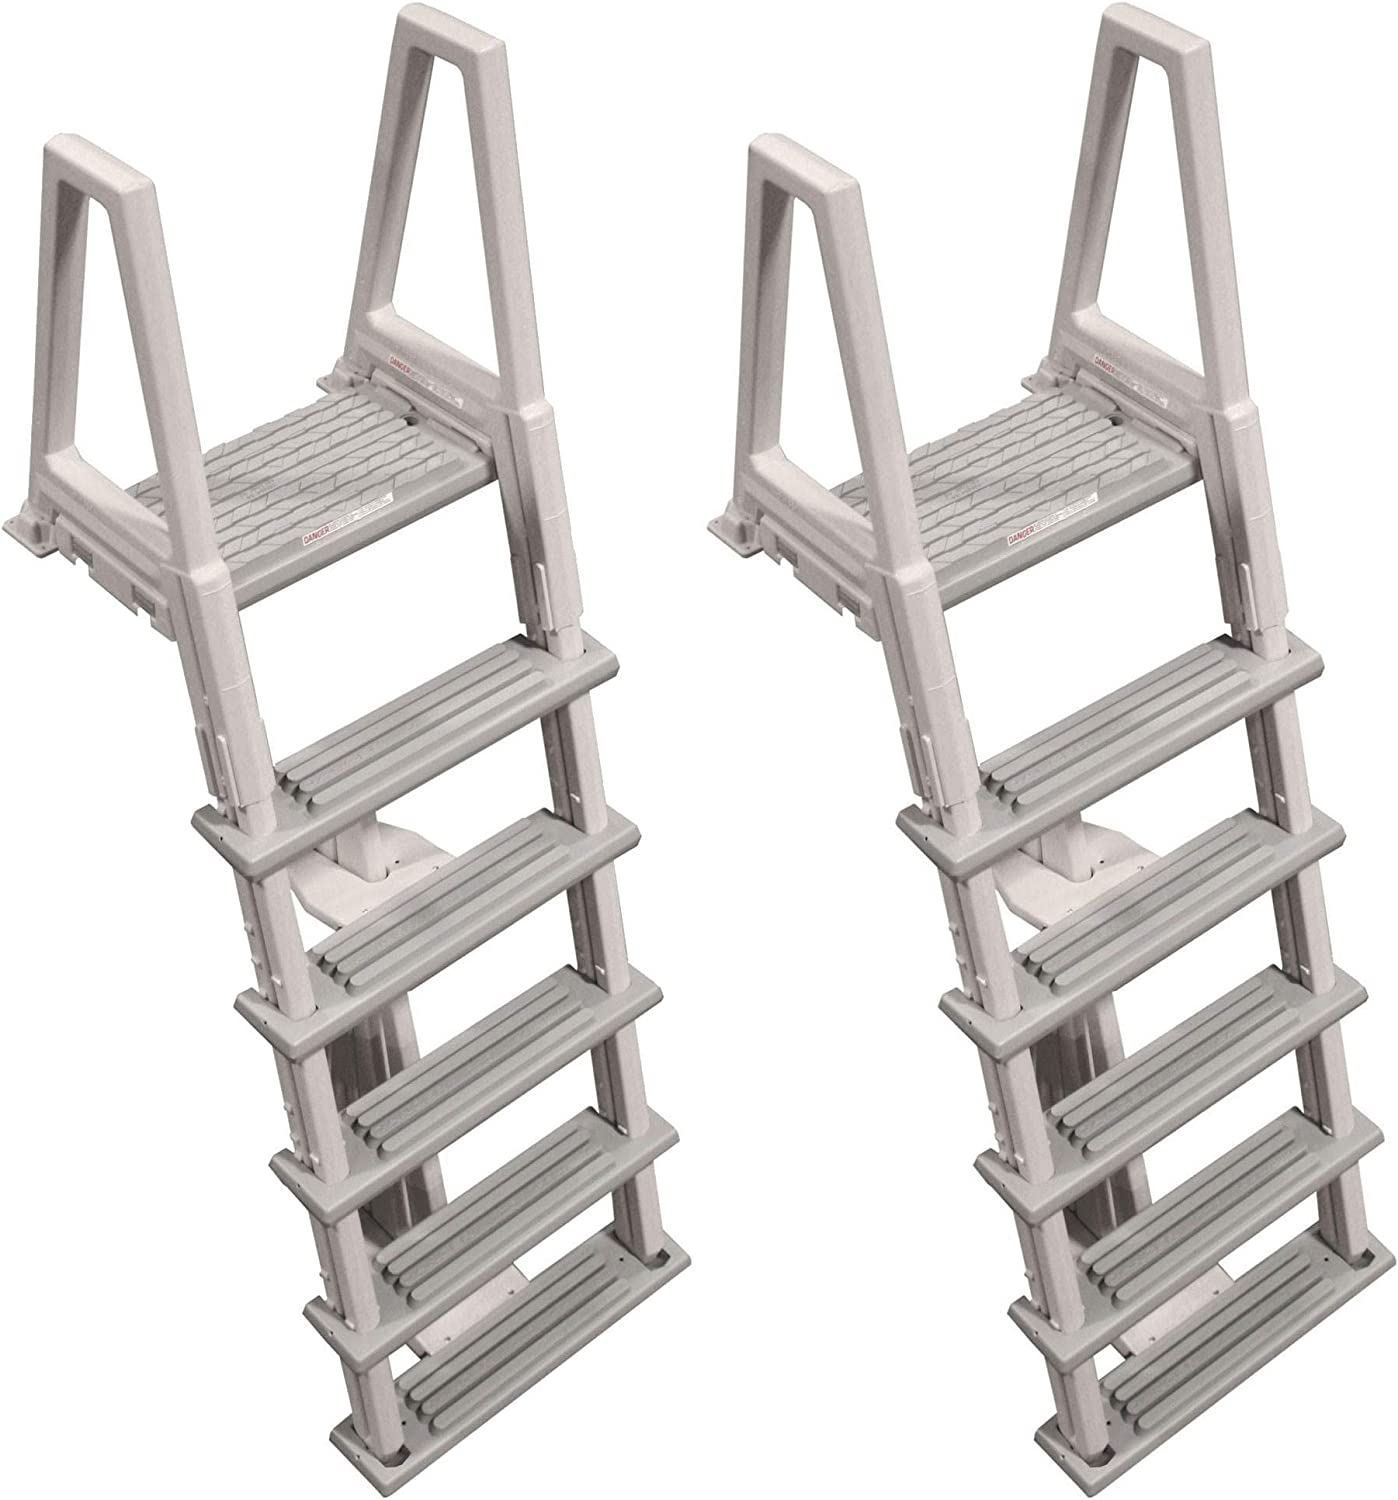 Confer Heavy-Duty Above-Ground Swimming Pool Ladder 46-56 Inches, Gray (2 Pack)